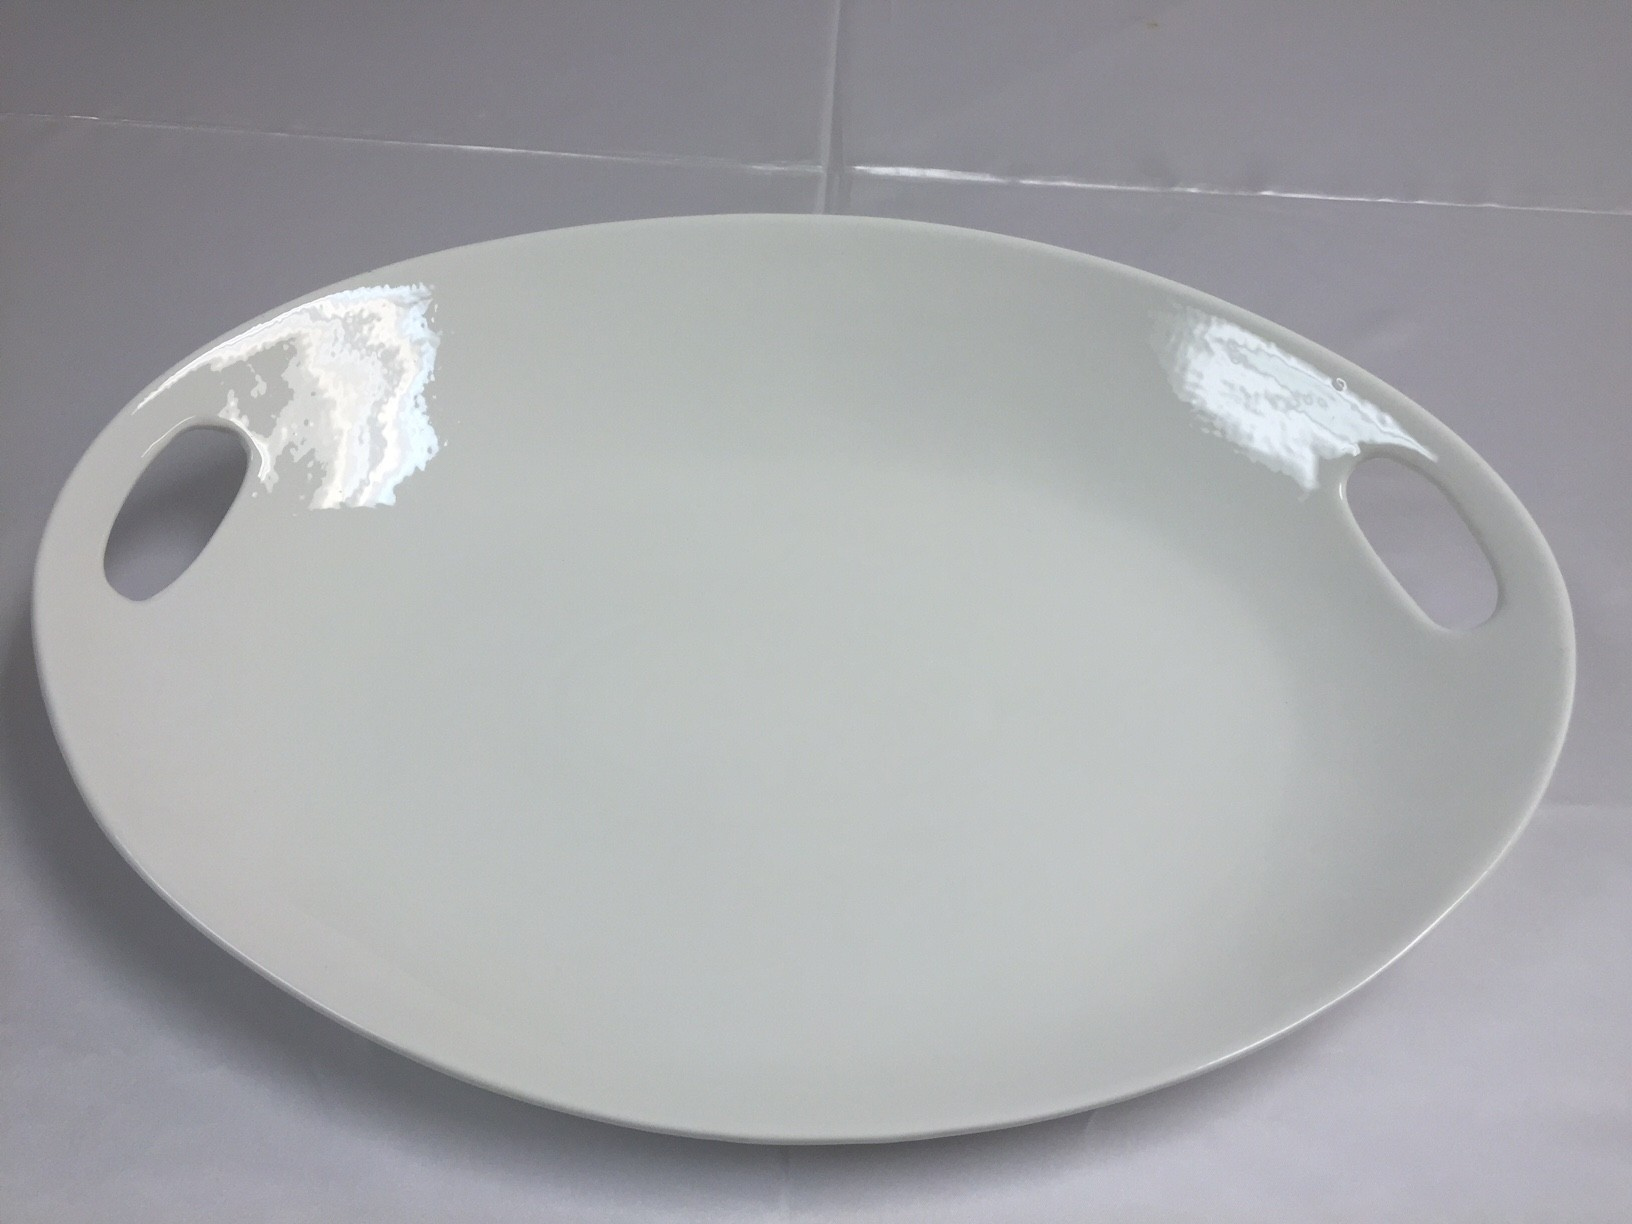 White Porcelain Platter with Handles - CE38